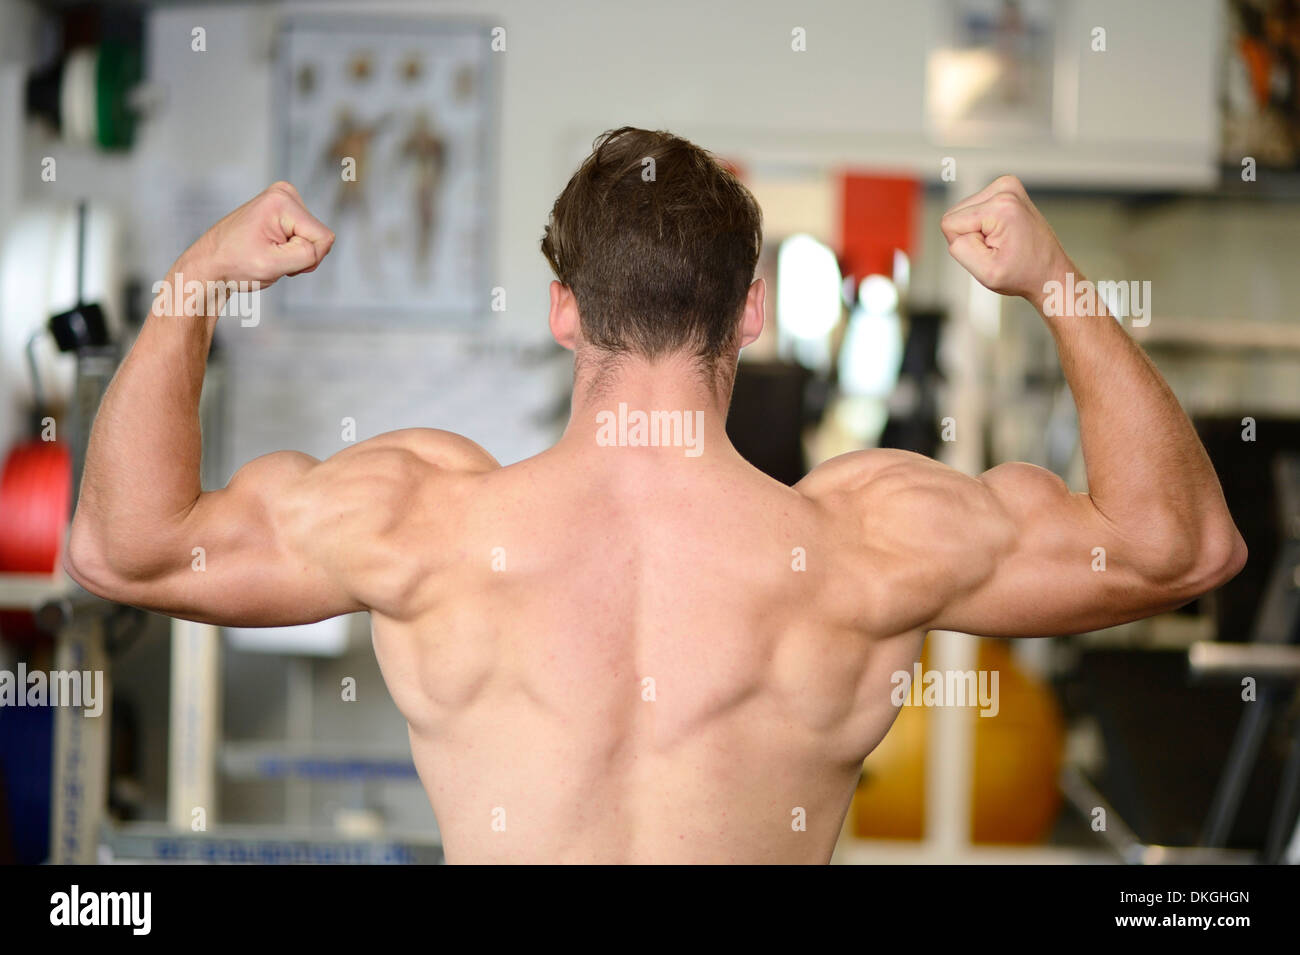 Young man posing in fitness center, rear view - Stock Image